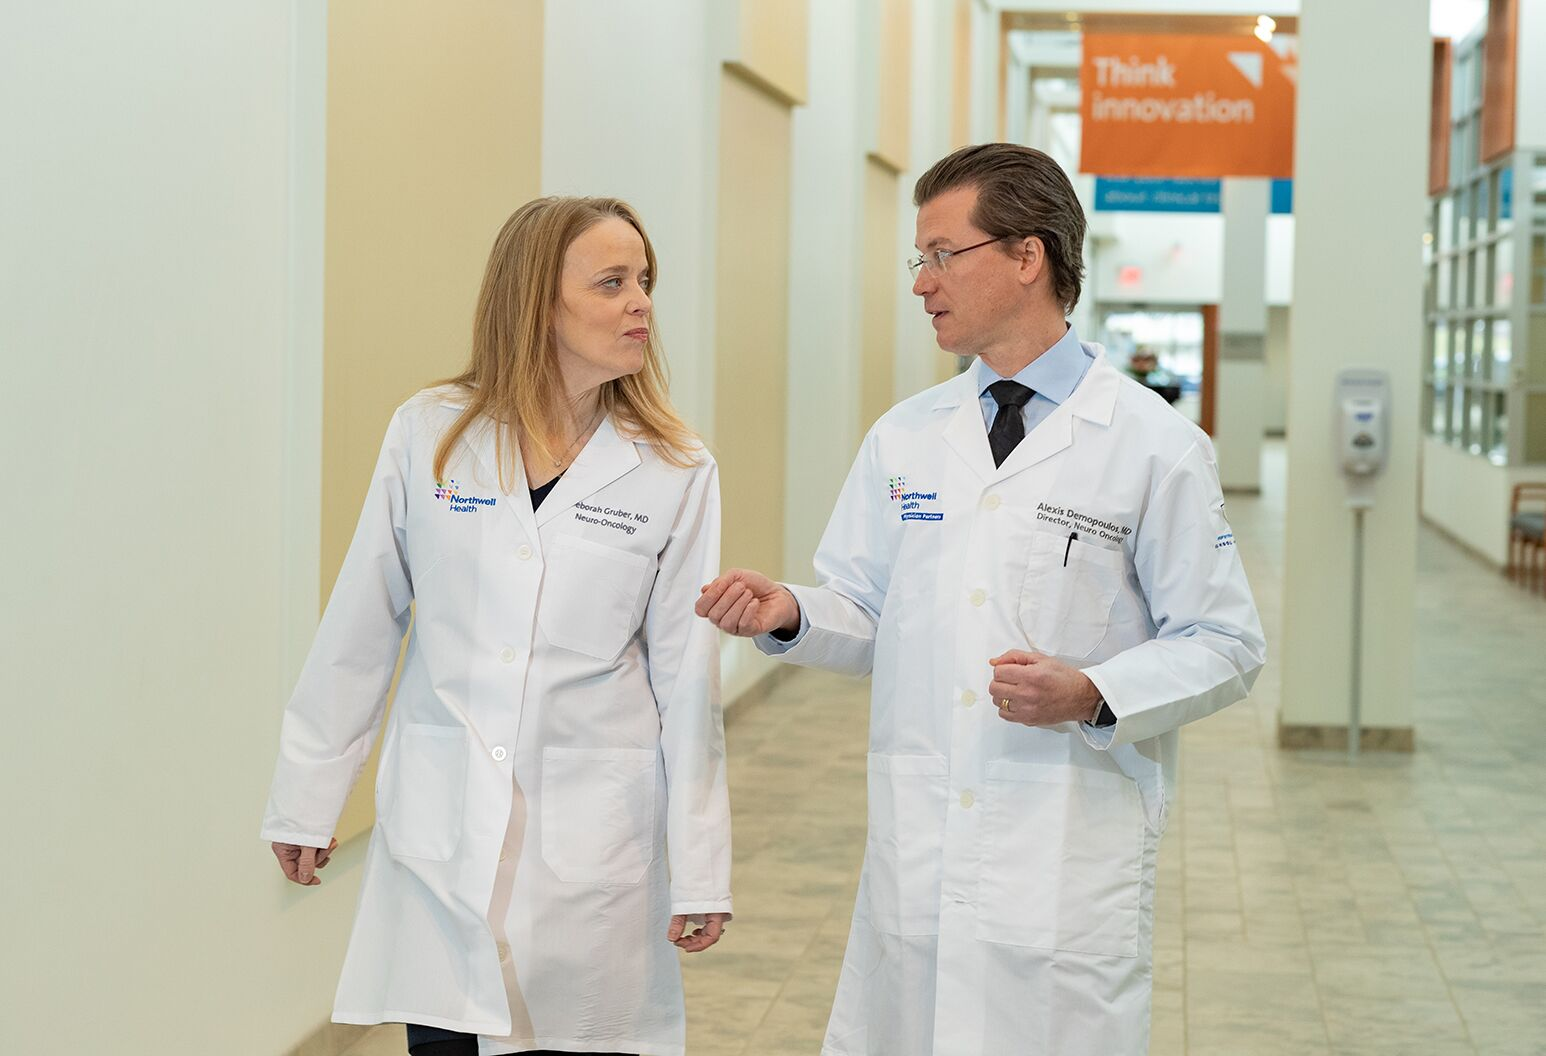 A female and male doctors walking down a hospital corridor.